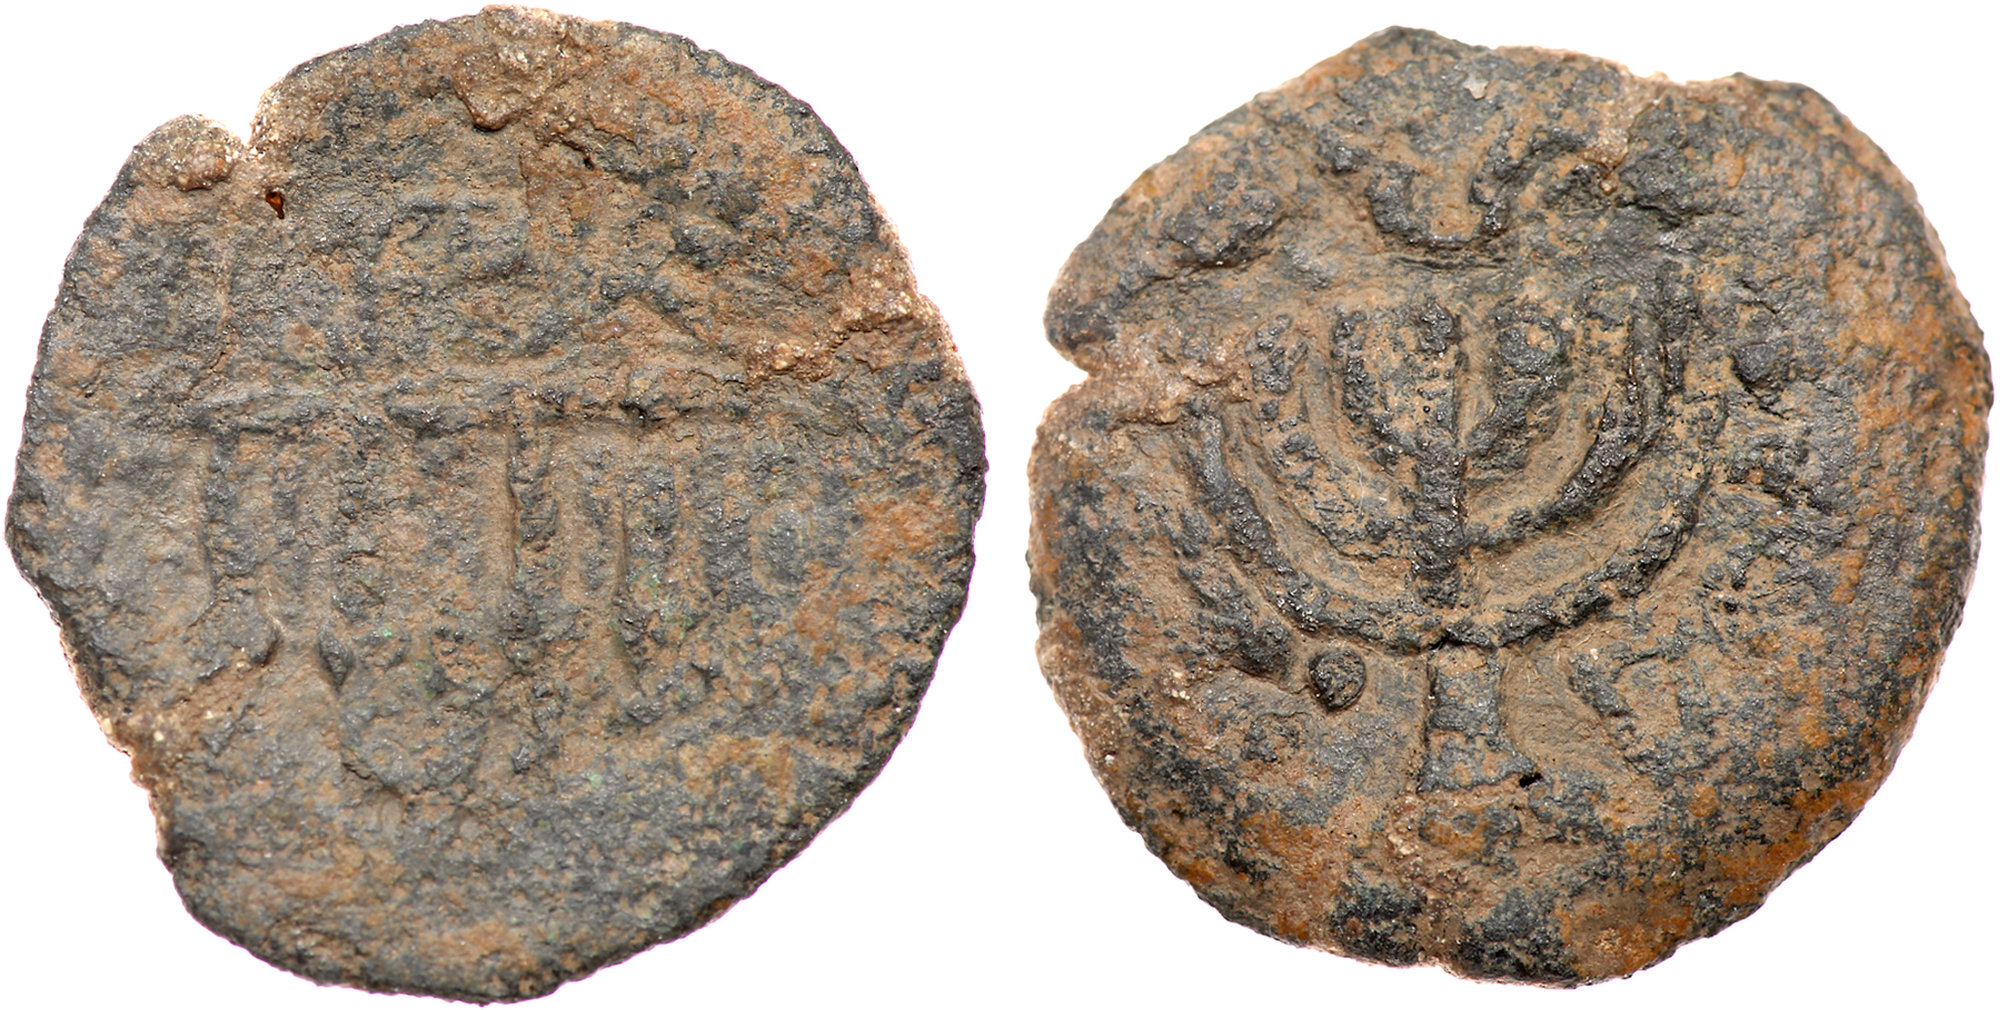 Judaea, Hasmonean Kingdom. Mattathias Antigonos. Bronze Prutah (1.37 g), 40-37 BCE. Trace of 'Mattatayah the High Priest', showbread table. Reverse: [BAΣIΛEΩΣ ANTIΓONOY], seven-branched menorah. TJC 41, Hendin 1168.